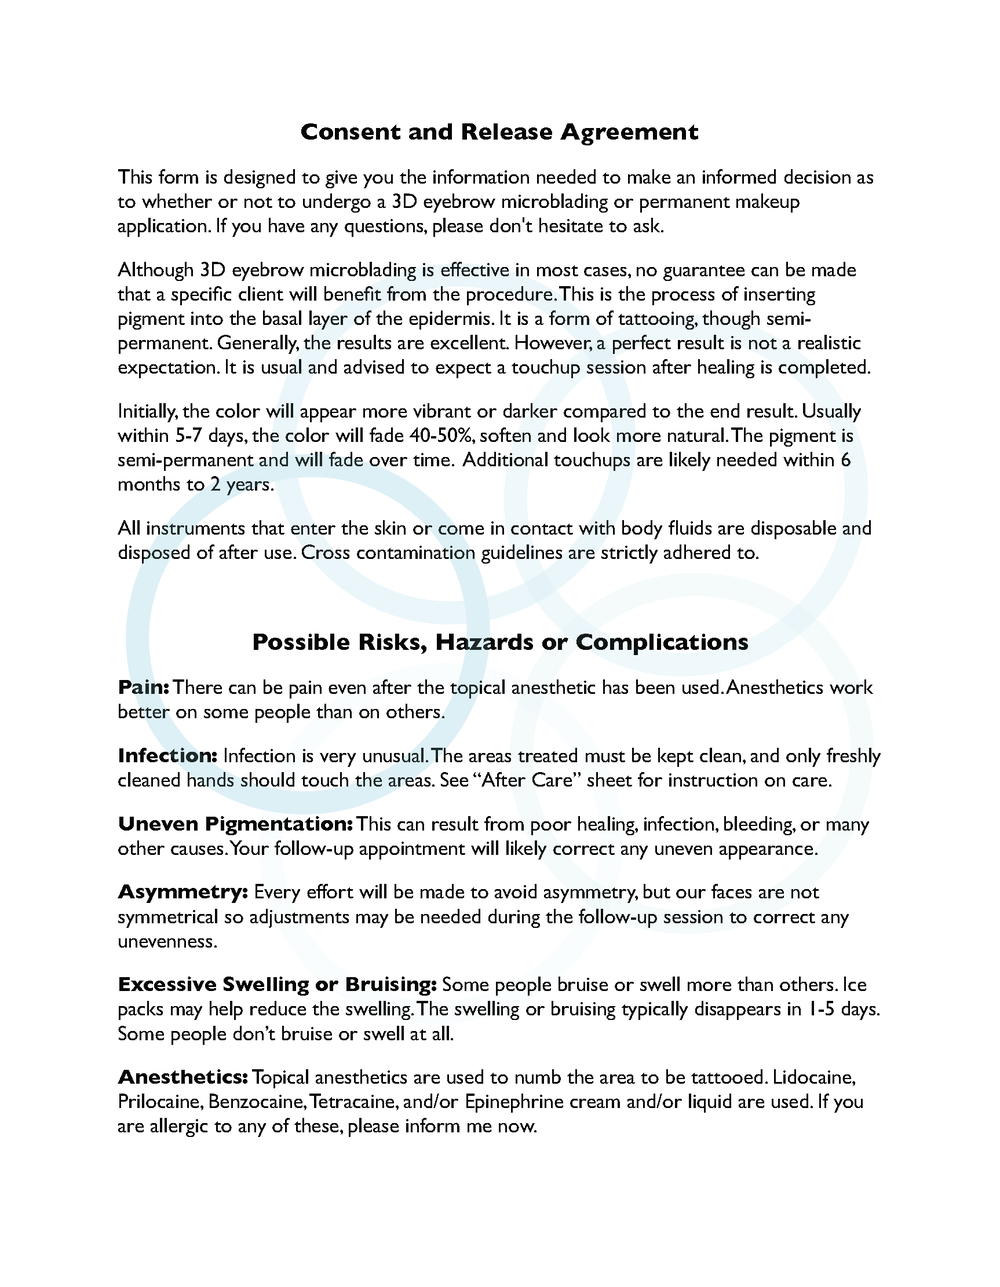 Consent and Release Agreement 22718_Page_1.png